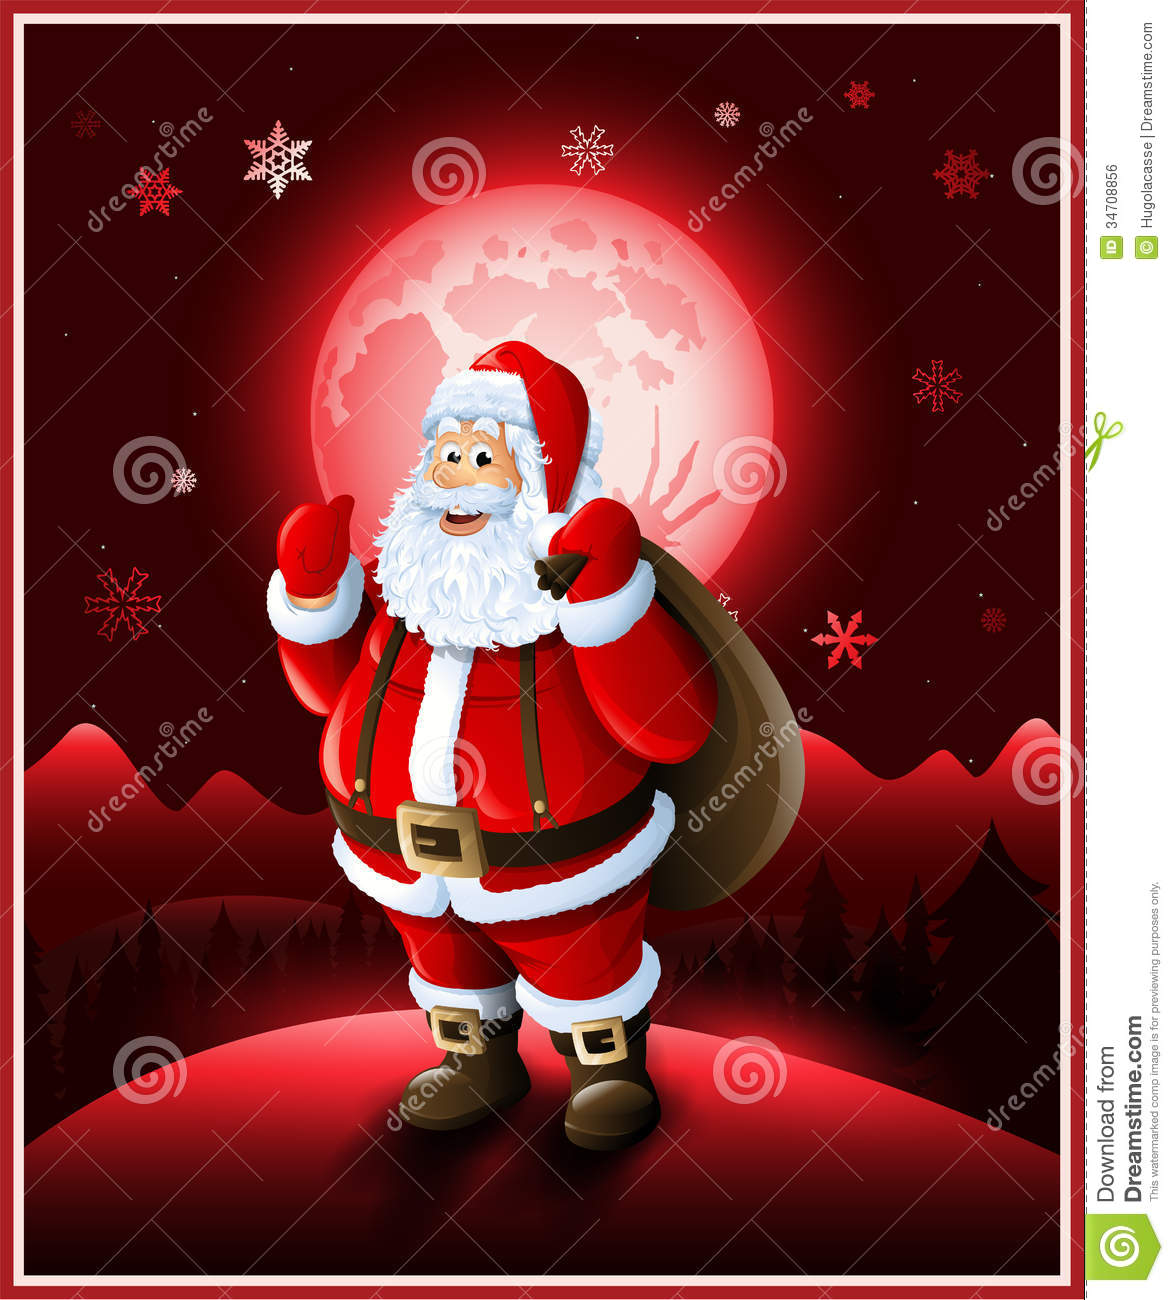 Santa claus background christmas greeting card stock vector santa claus background christmas greeting card m4hsunfo Image collections